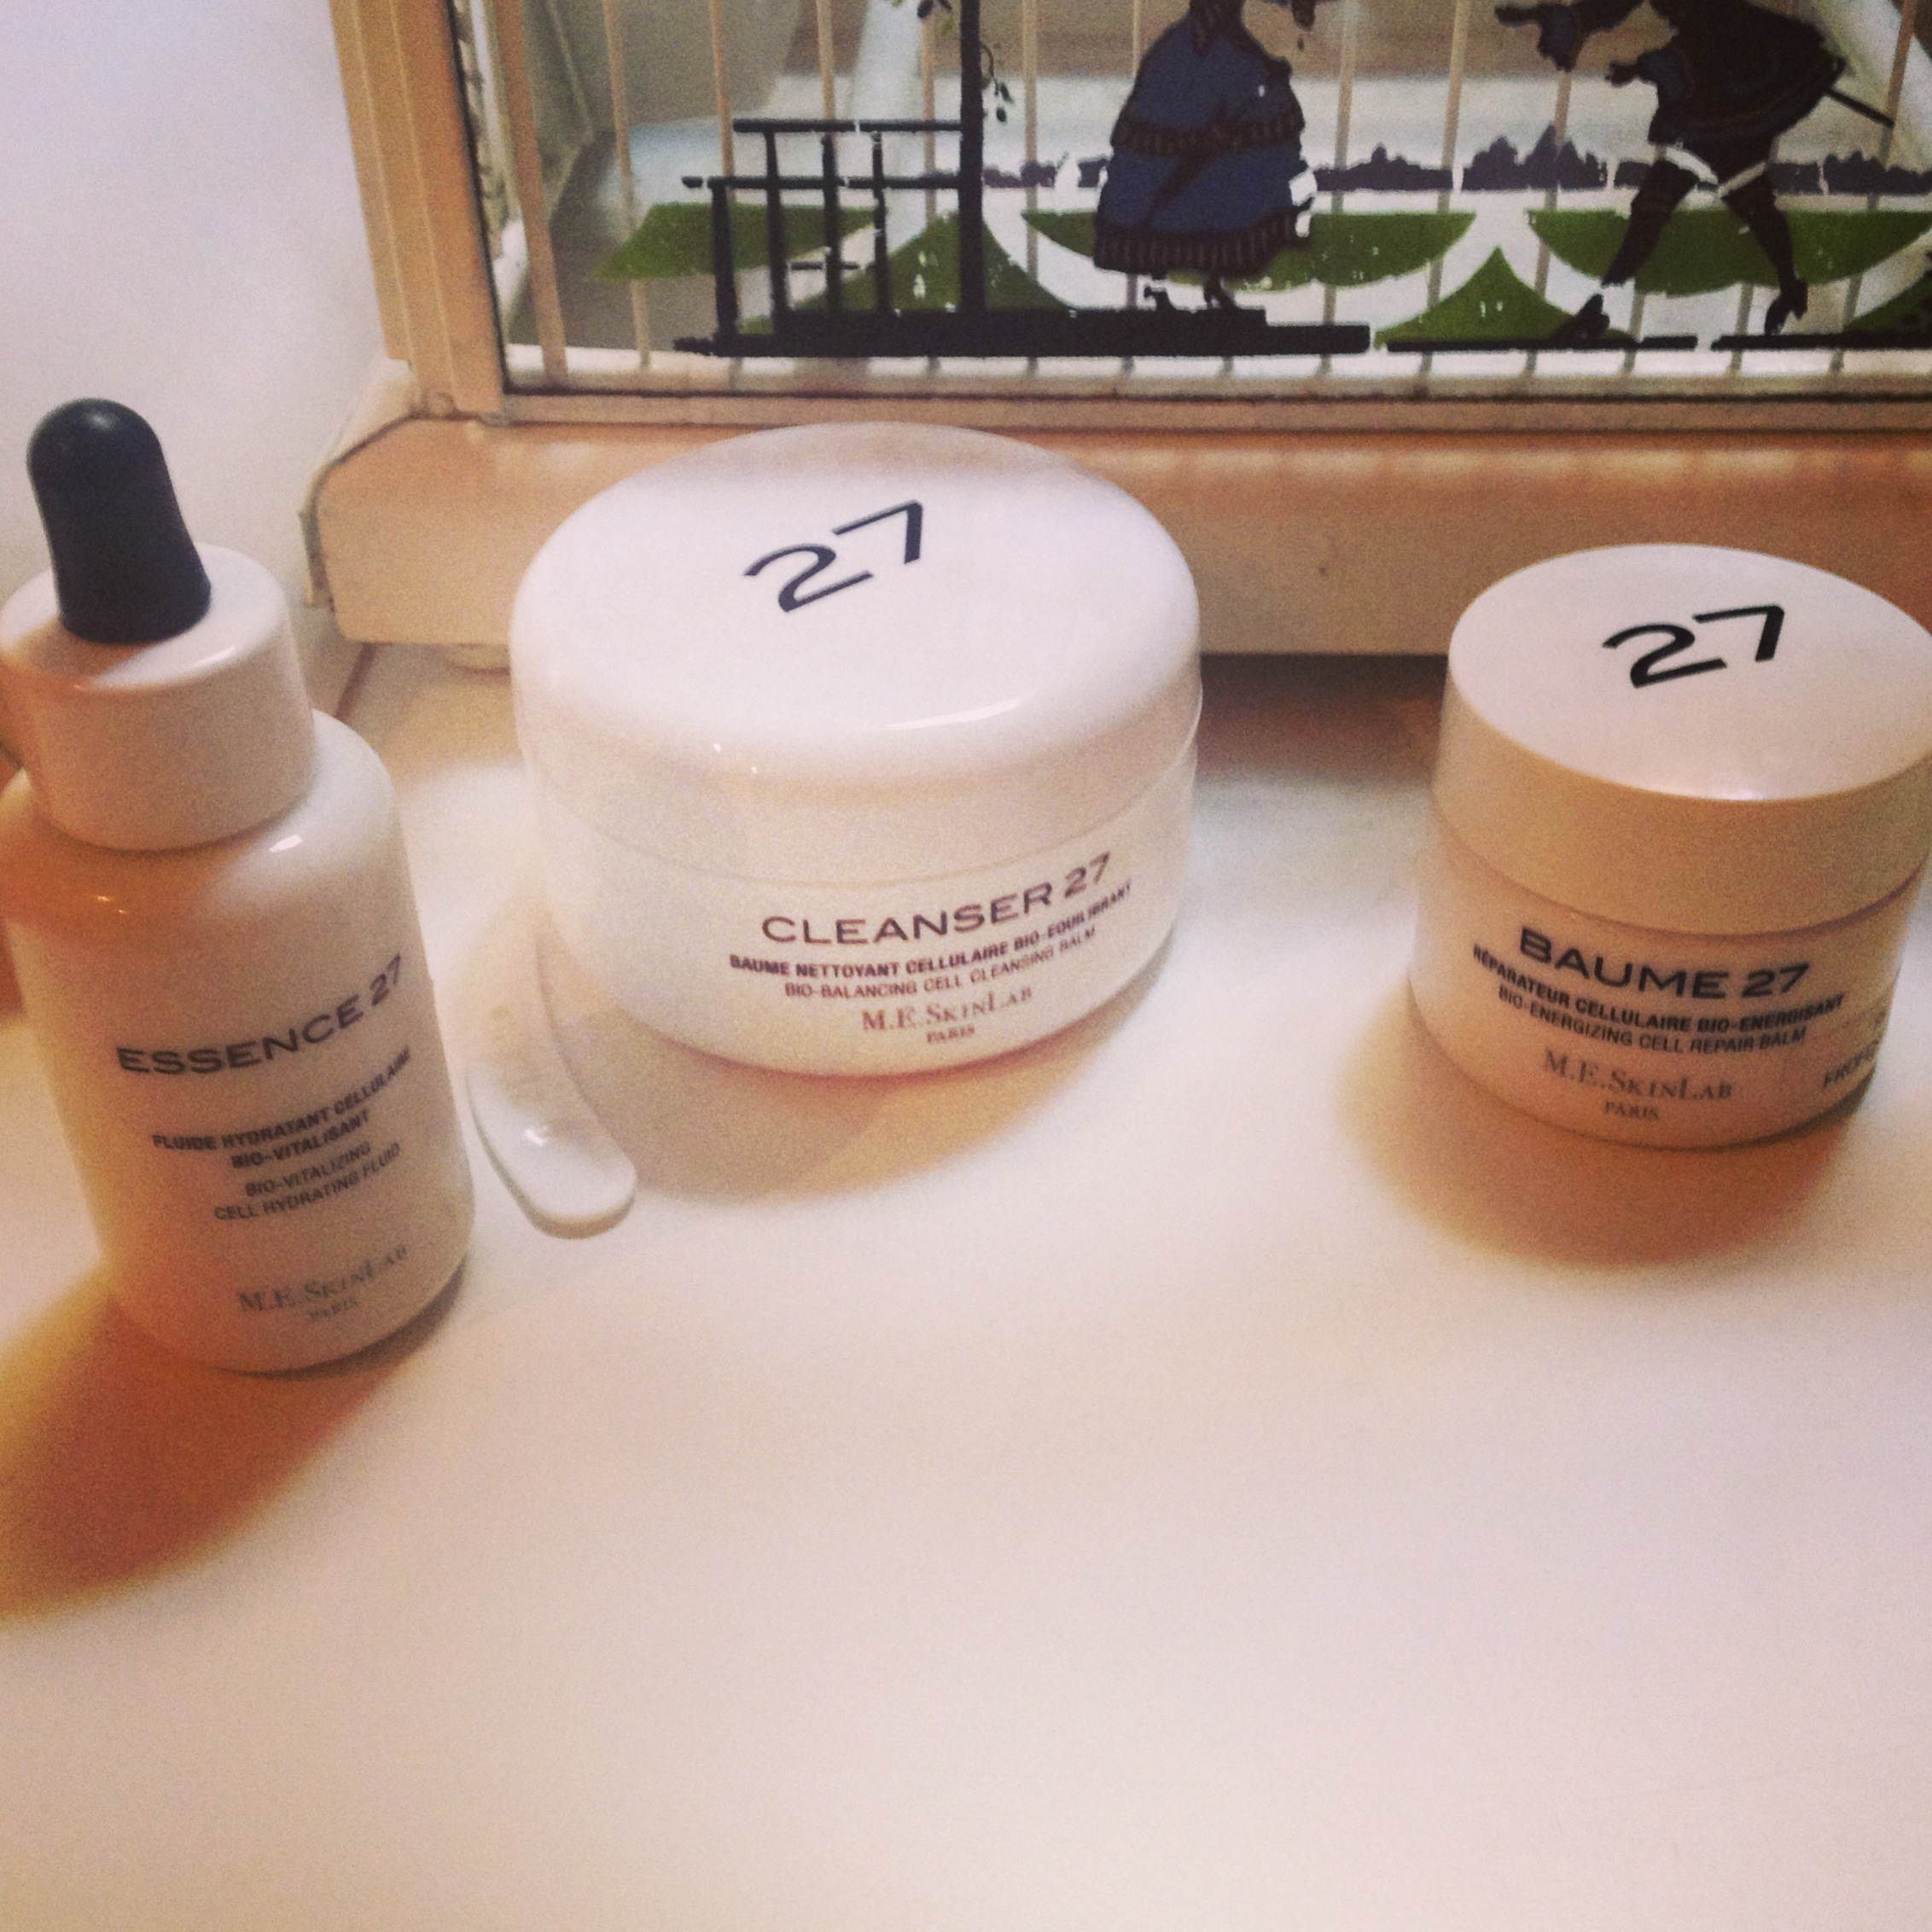 Cosmetics 27 at Kroonen & Brown / Pic by kiwikoo